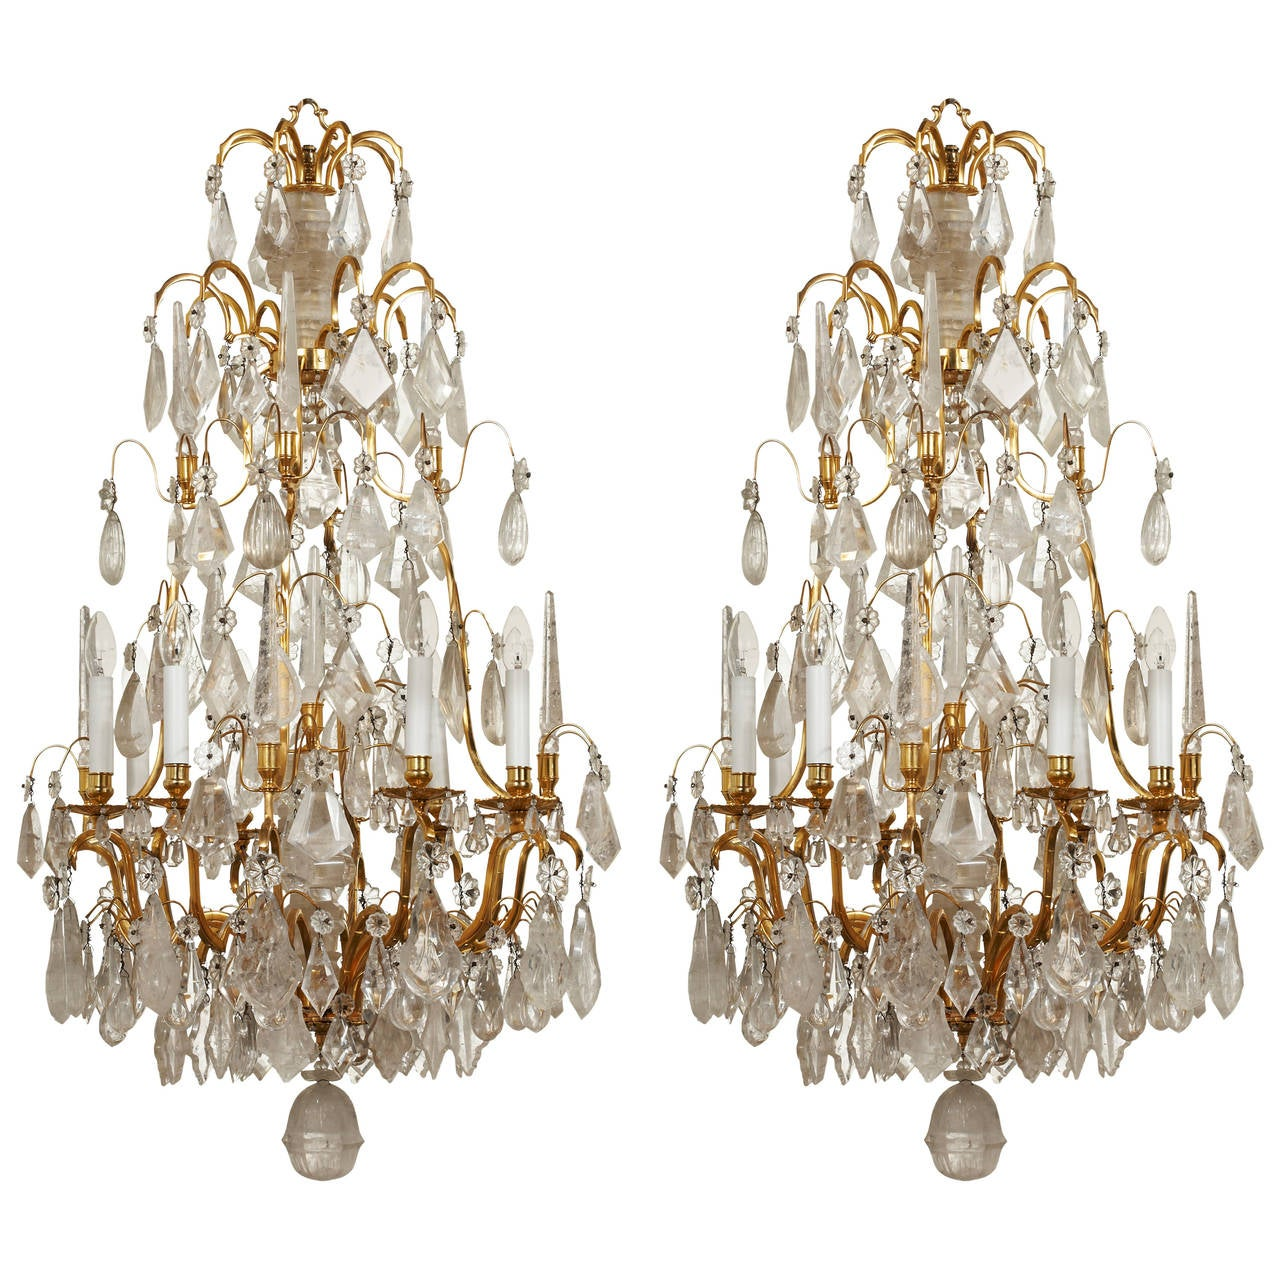 Unique french 18th century style rock crystal chandeliers at 1stdibs - Unique crystal chandeliers ...